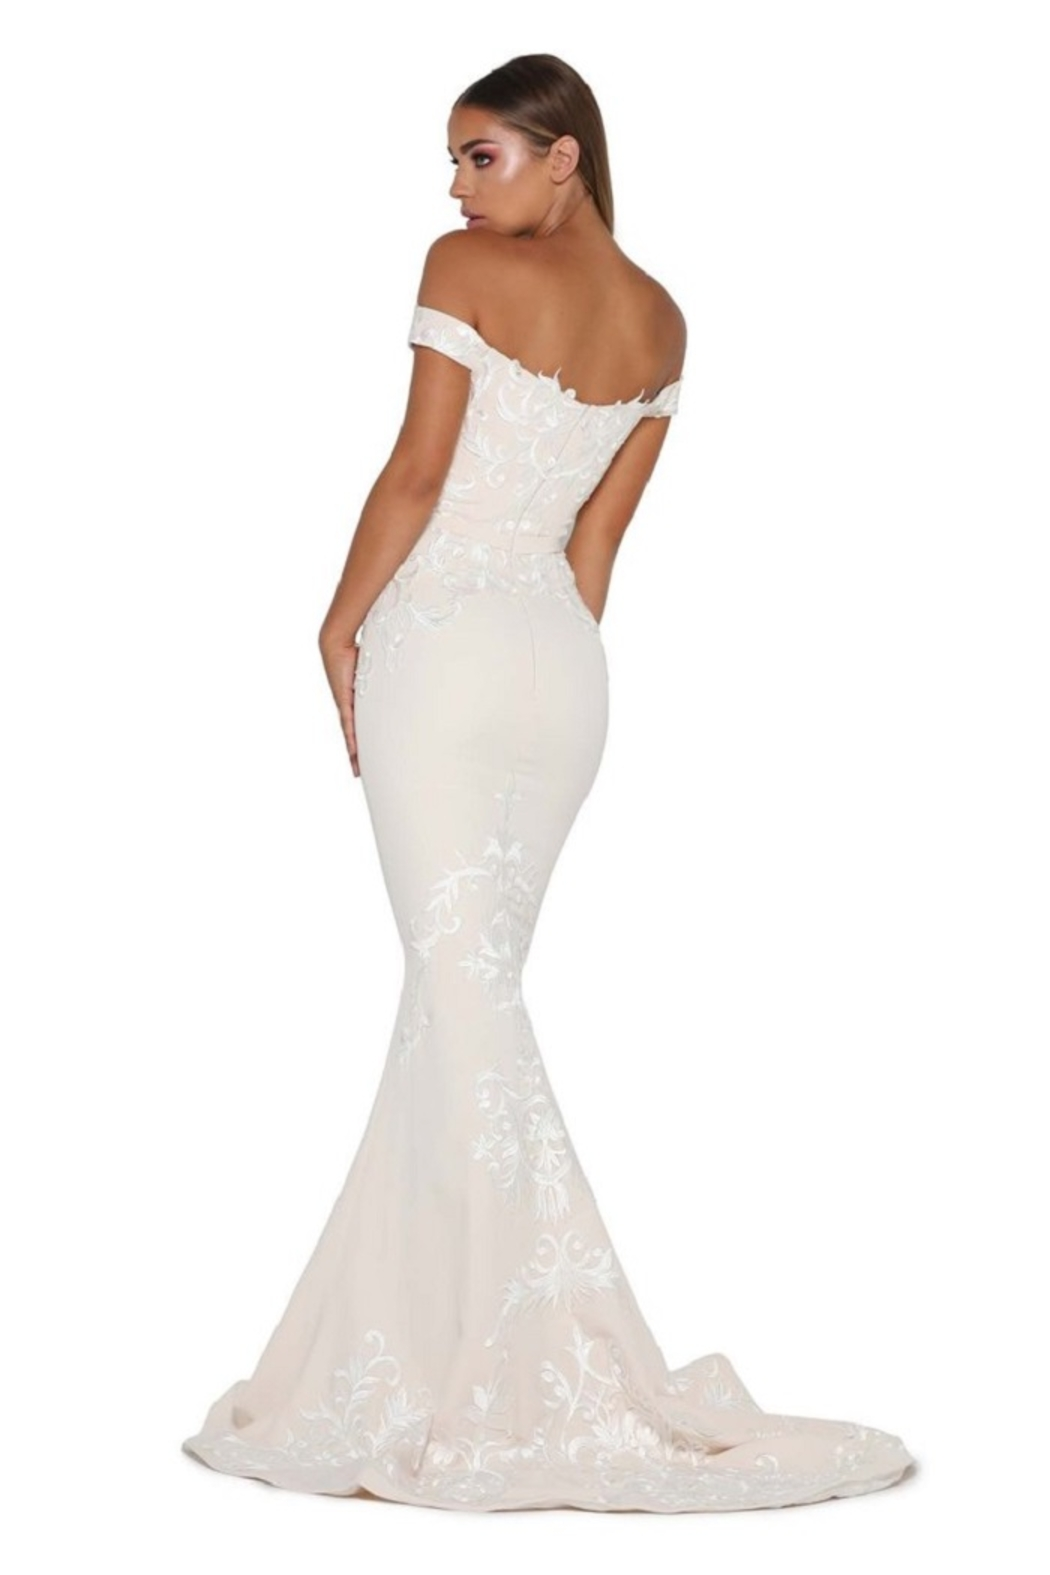 PORTIA AND SCARLETT Cream Lace Applique Fit & Flare Bridal Gown - Front Full Image